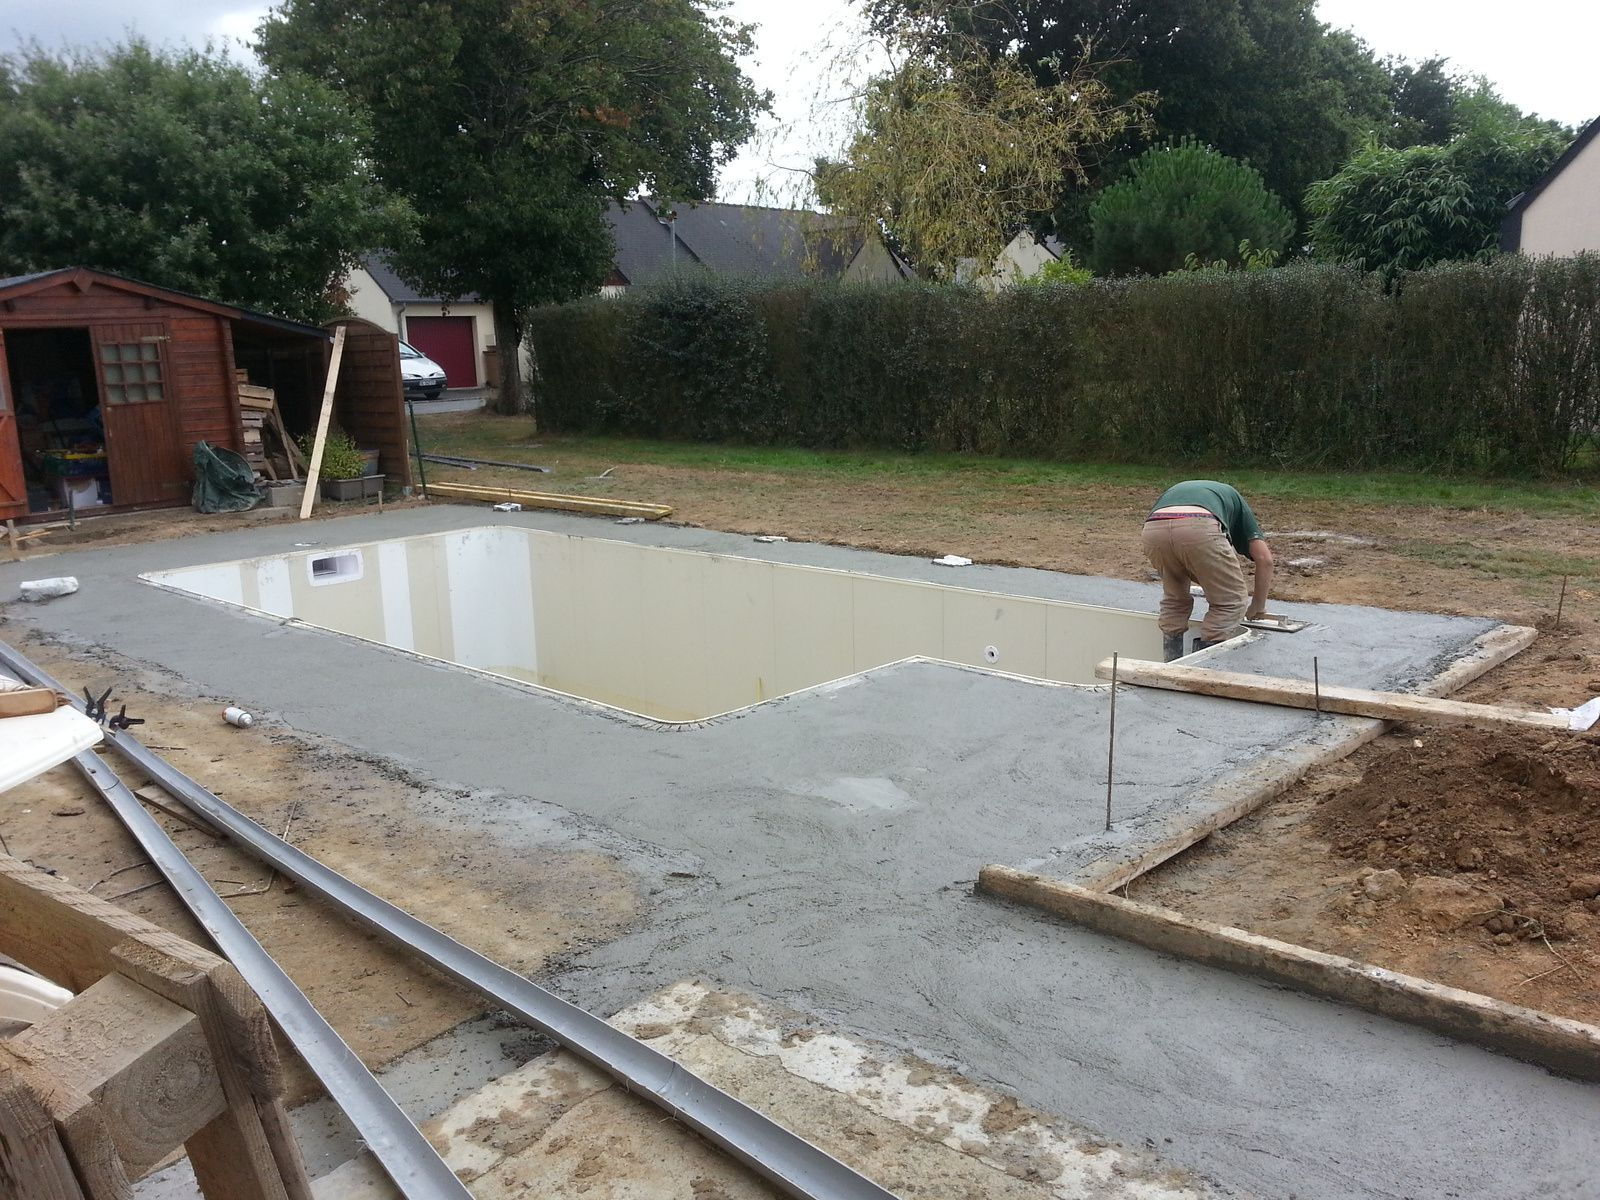 La construction de ma piscine aquilus 35 voici les for Construction piscine 35